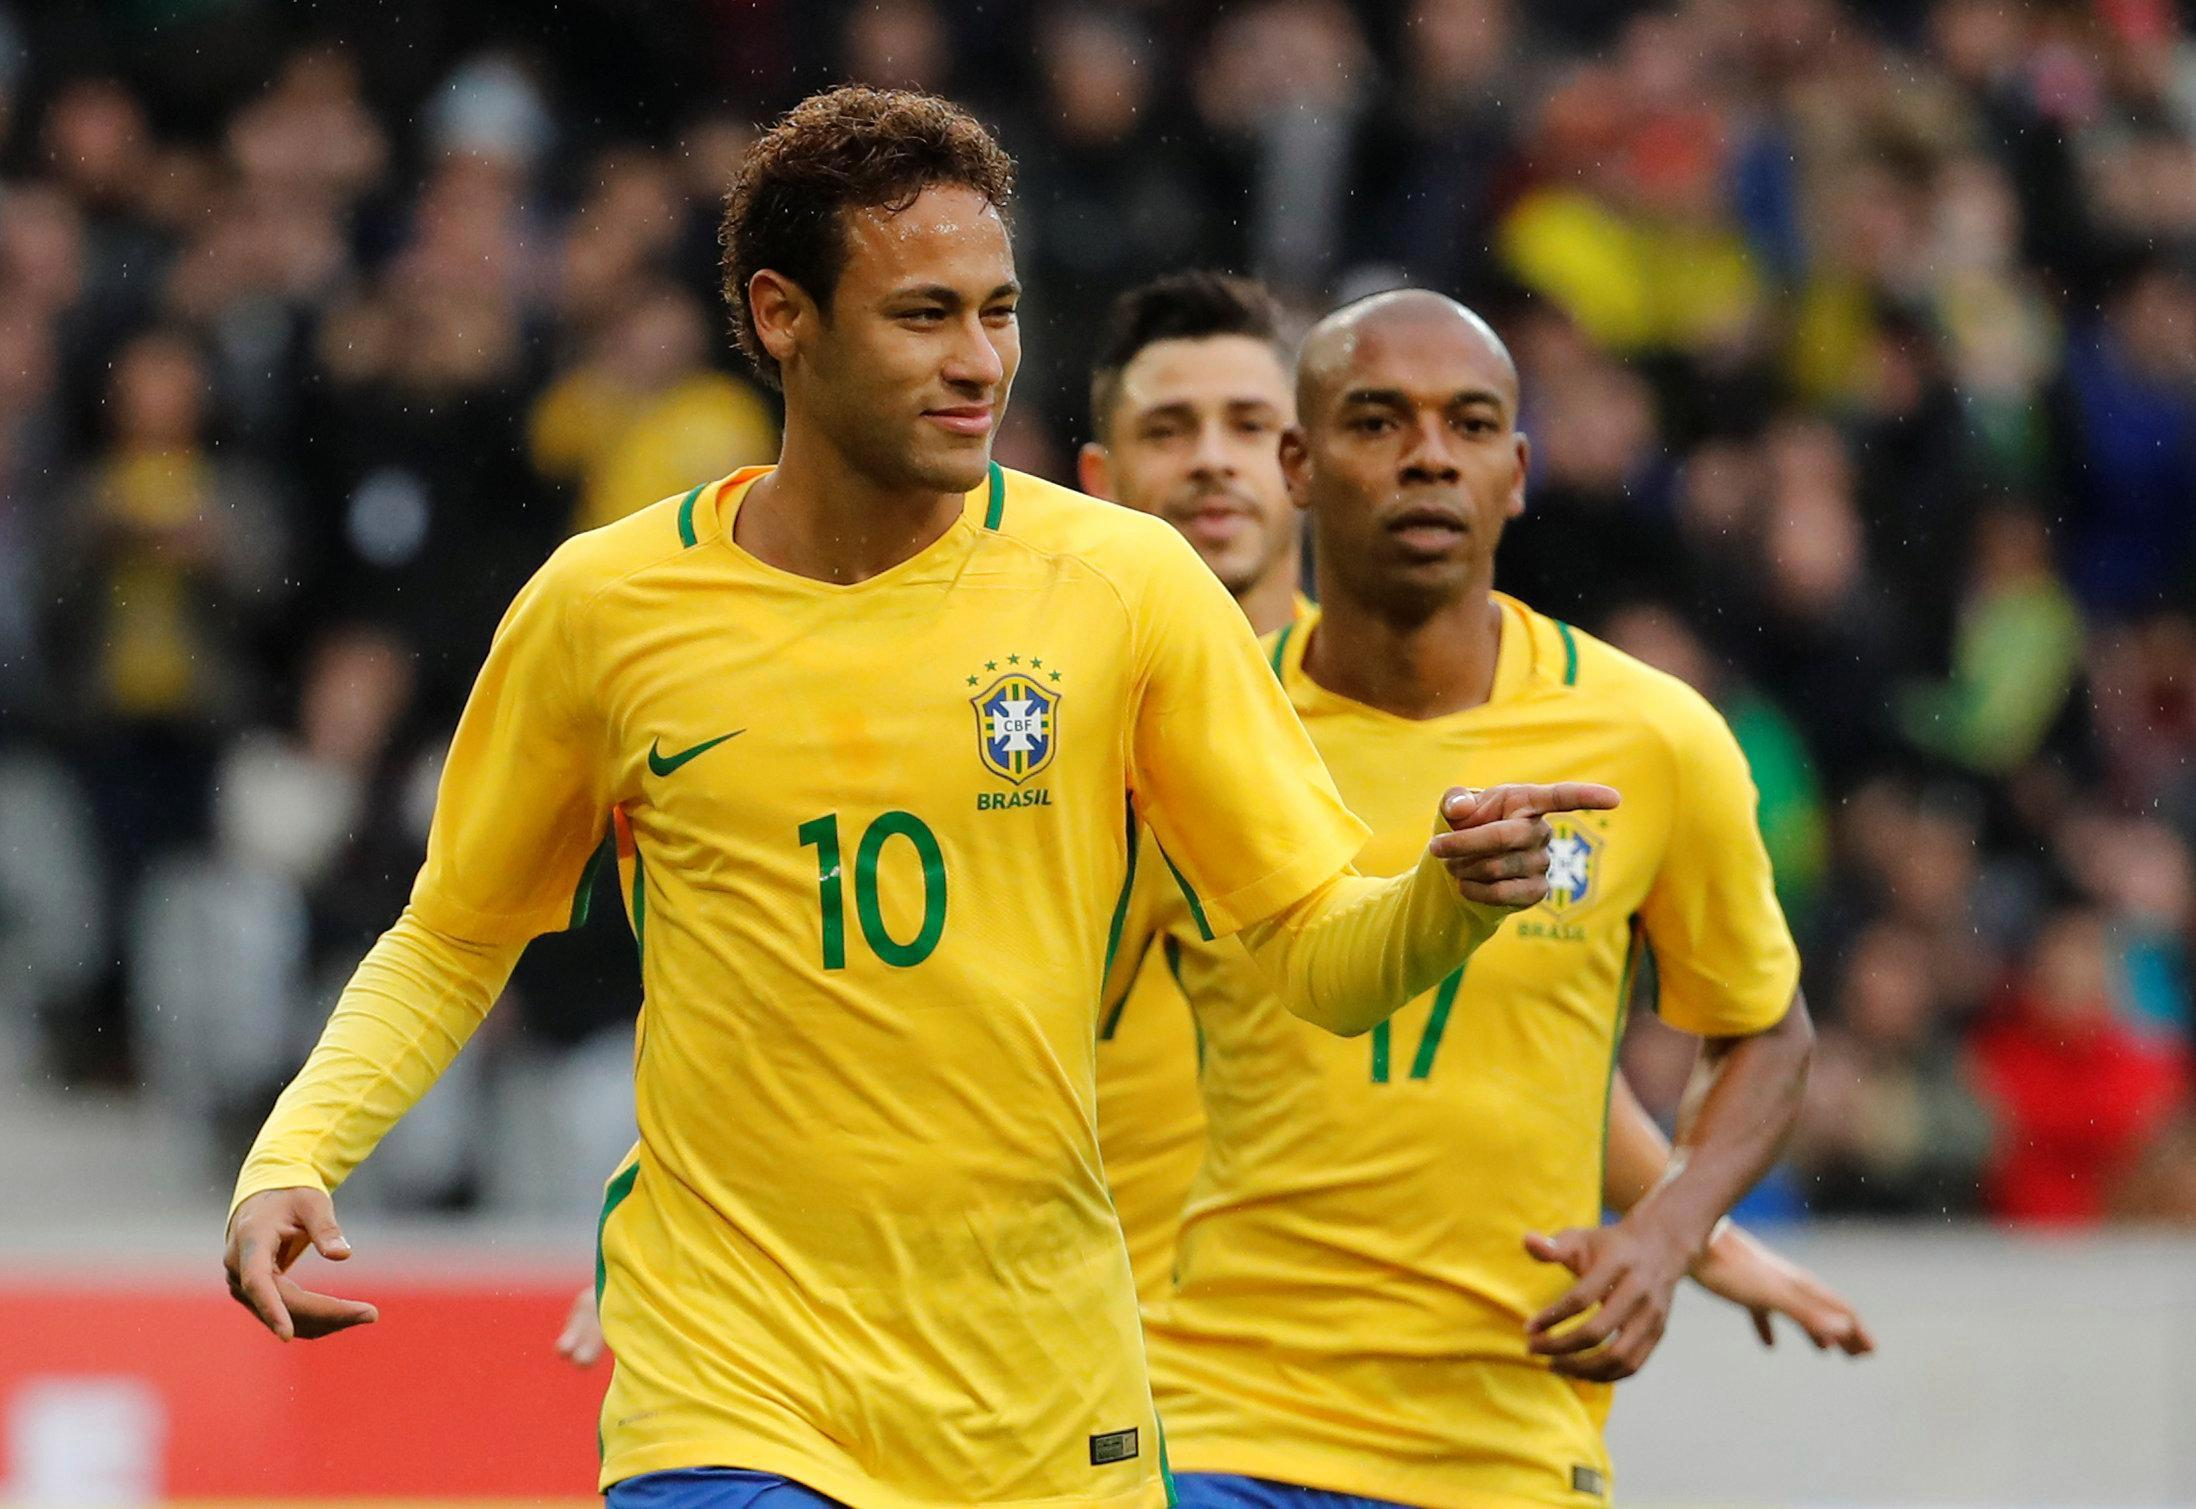 Neymar celebrates netting for Brazil but is unhappy with rumours over his move to PSG